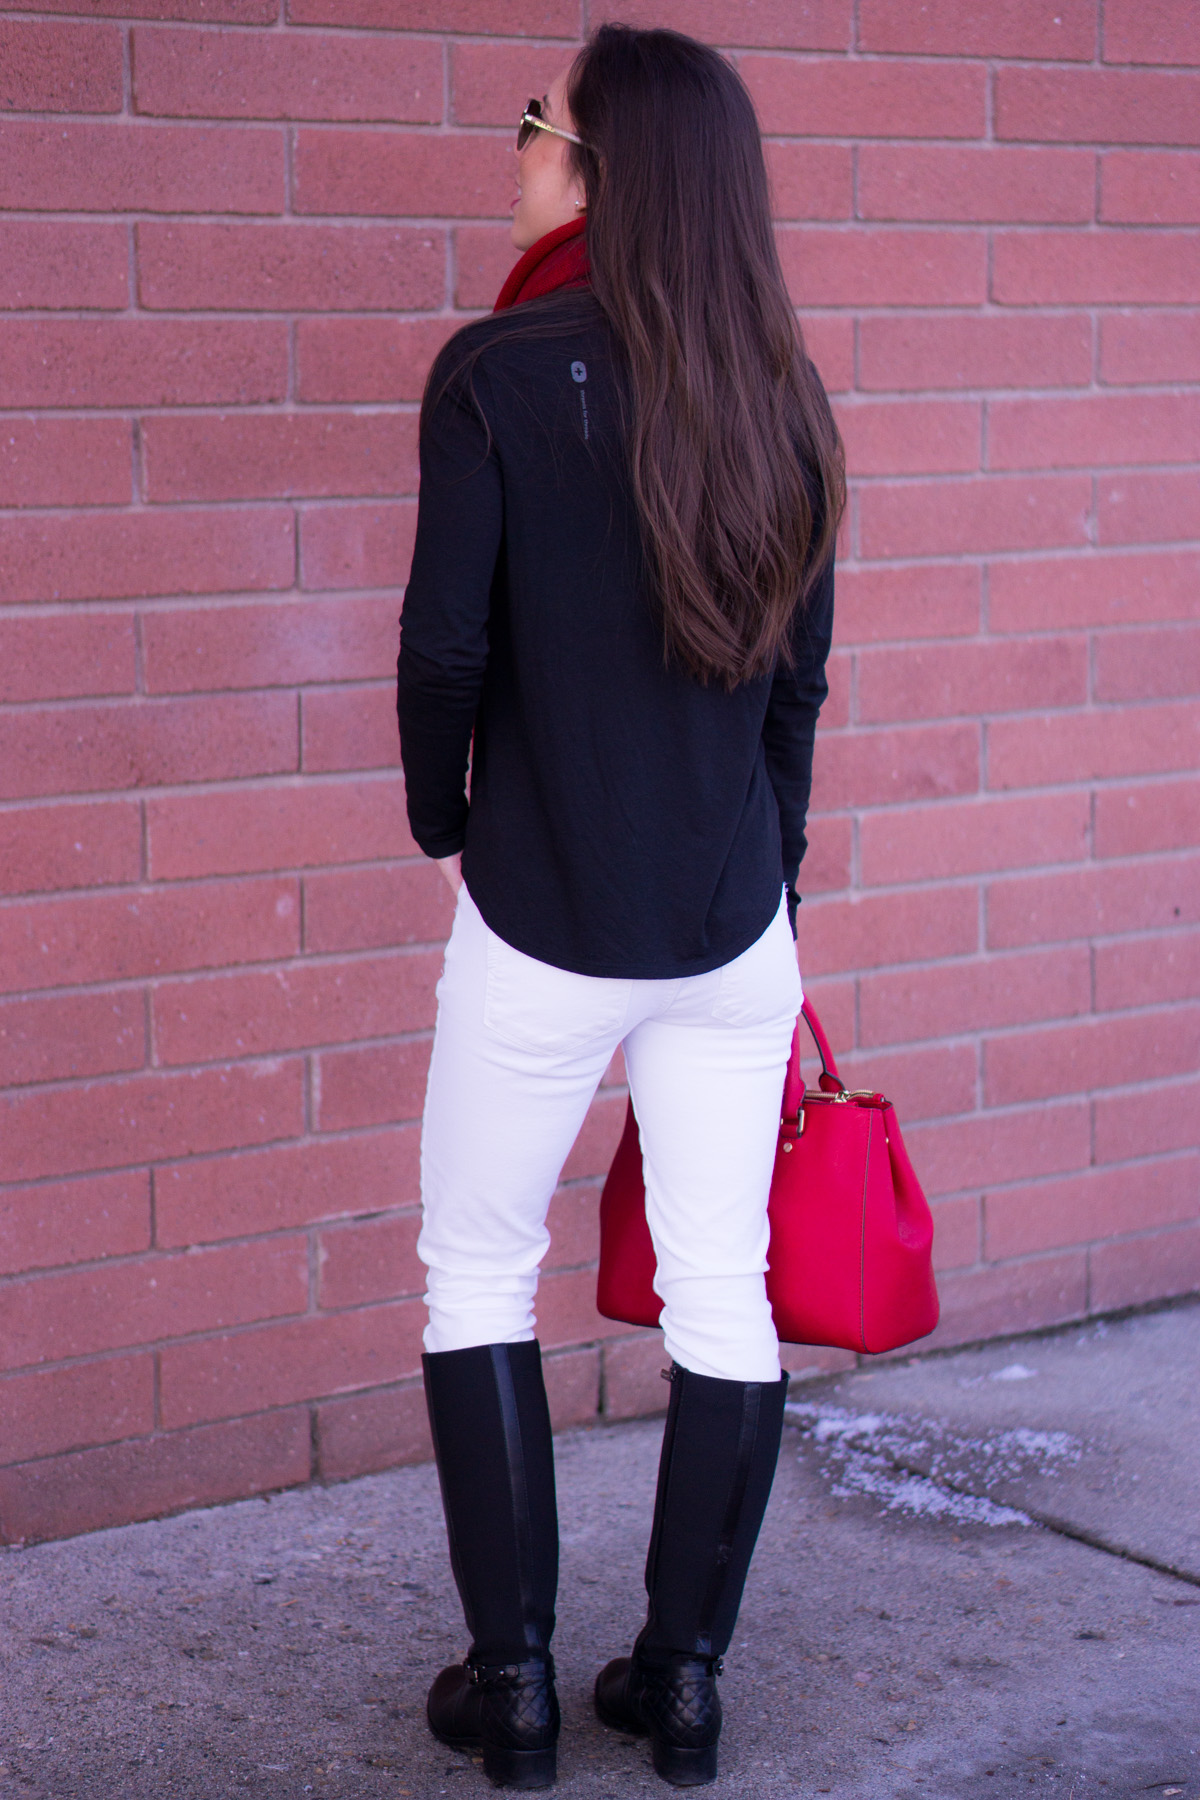 How to Transition into Spring with White Denim | Spring Outfit Ideas| Paige Petite White Denim Jeans | Aquatalia Boots | Talbots Belt | Krochet Kids Scarf